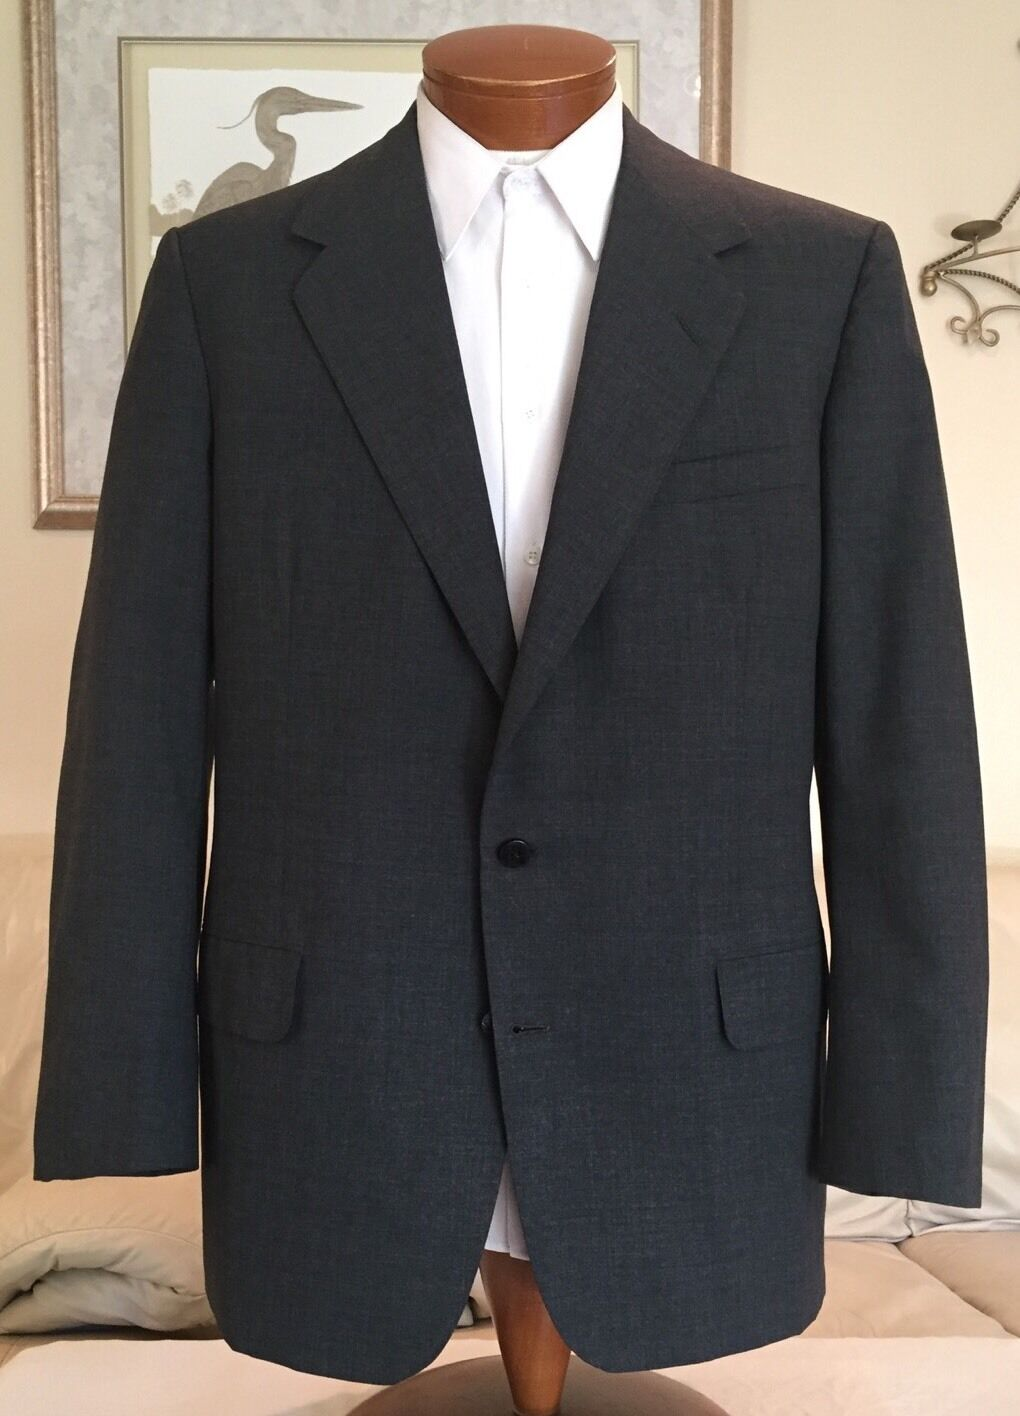 Oxxford Clothes  Herren Partially Lined grau 2 Btn Blazer Sz 42 R MINT